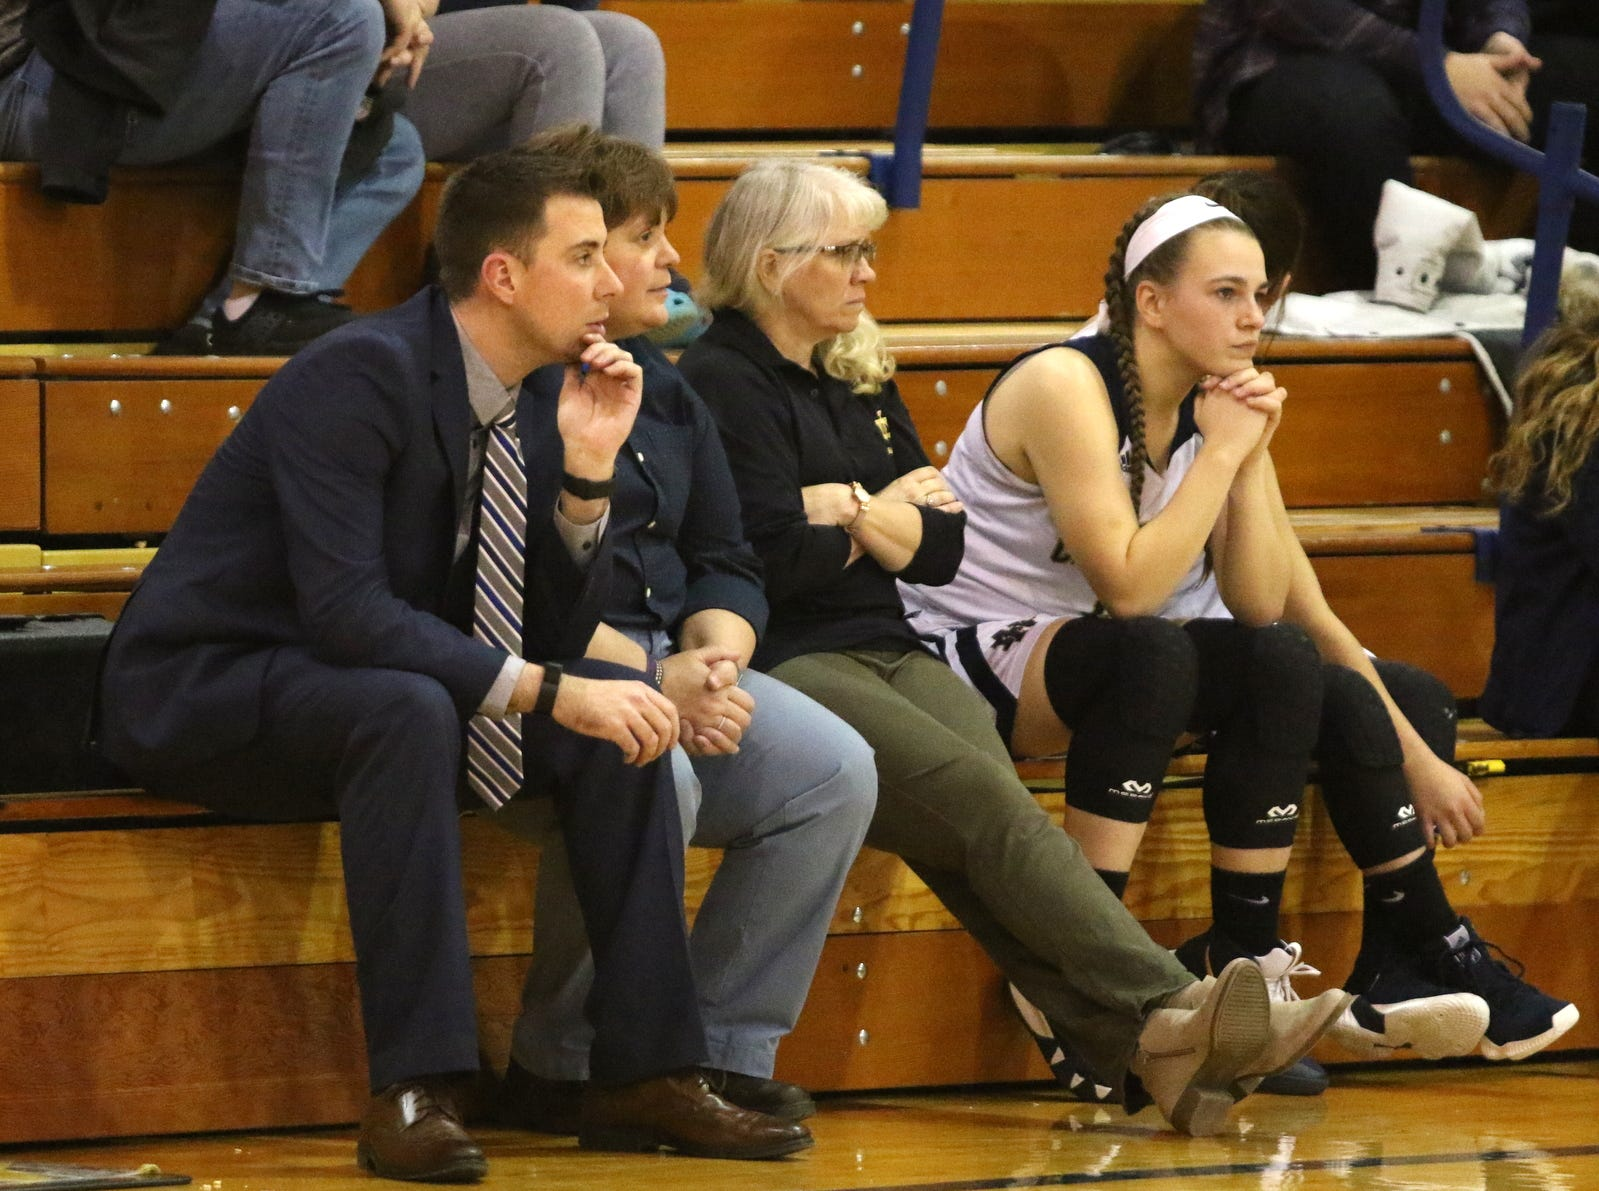 Max Young, left, coaches the Elmira Notre Dame girls basketball team against Bainbridge-Guilford on Jan. 12, 2019 in Southport.